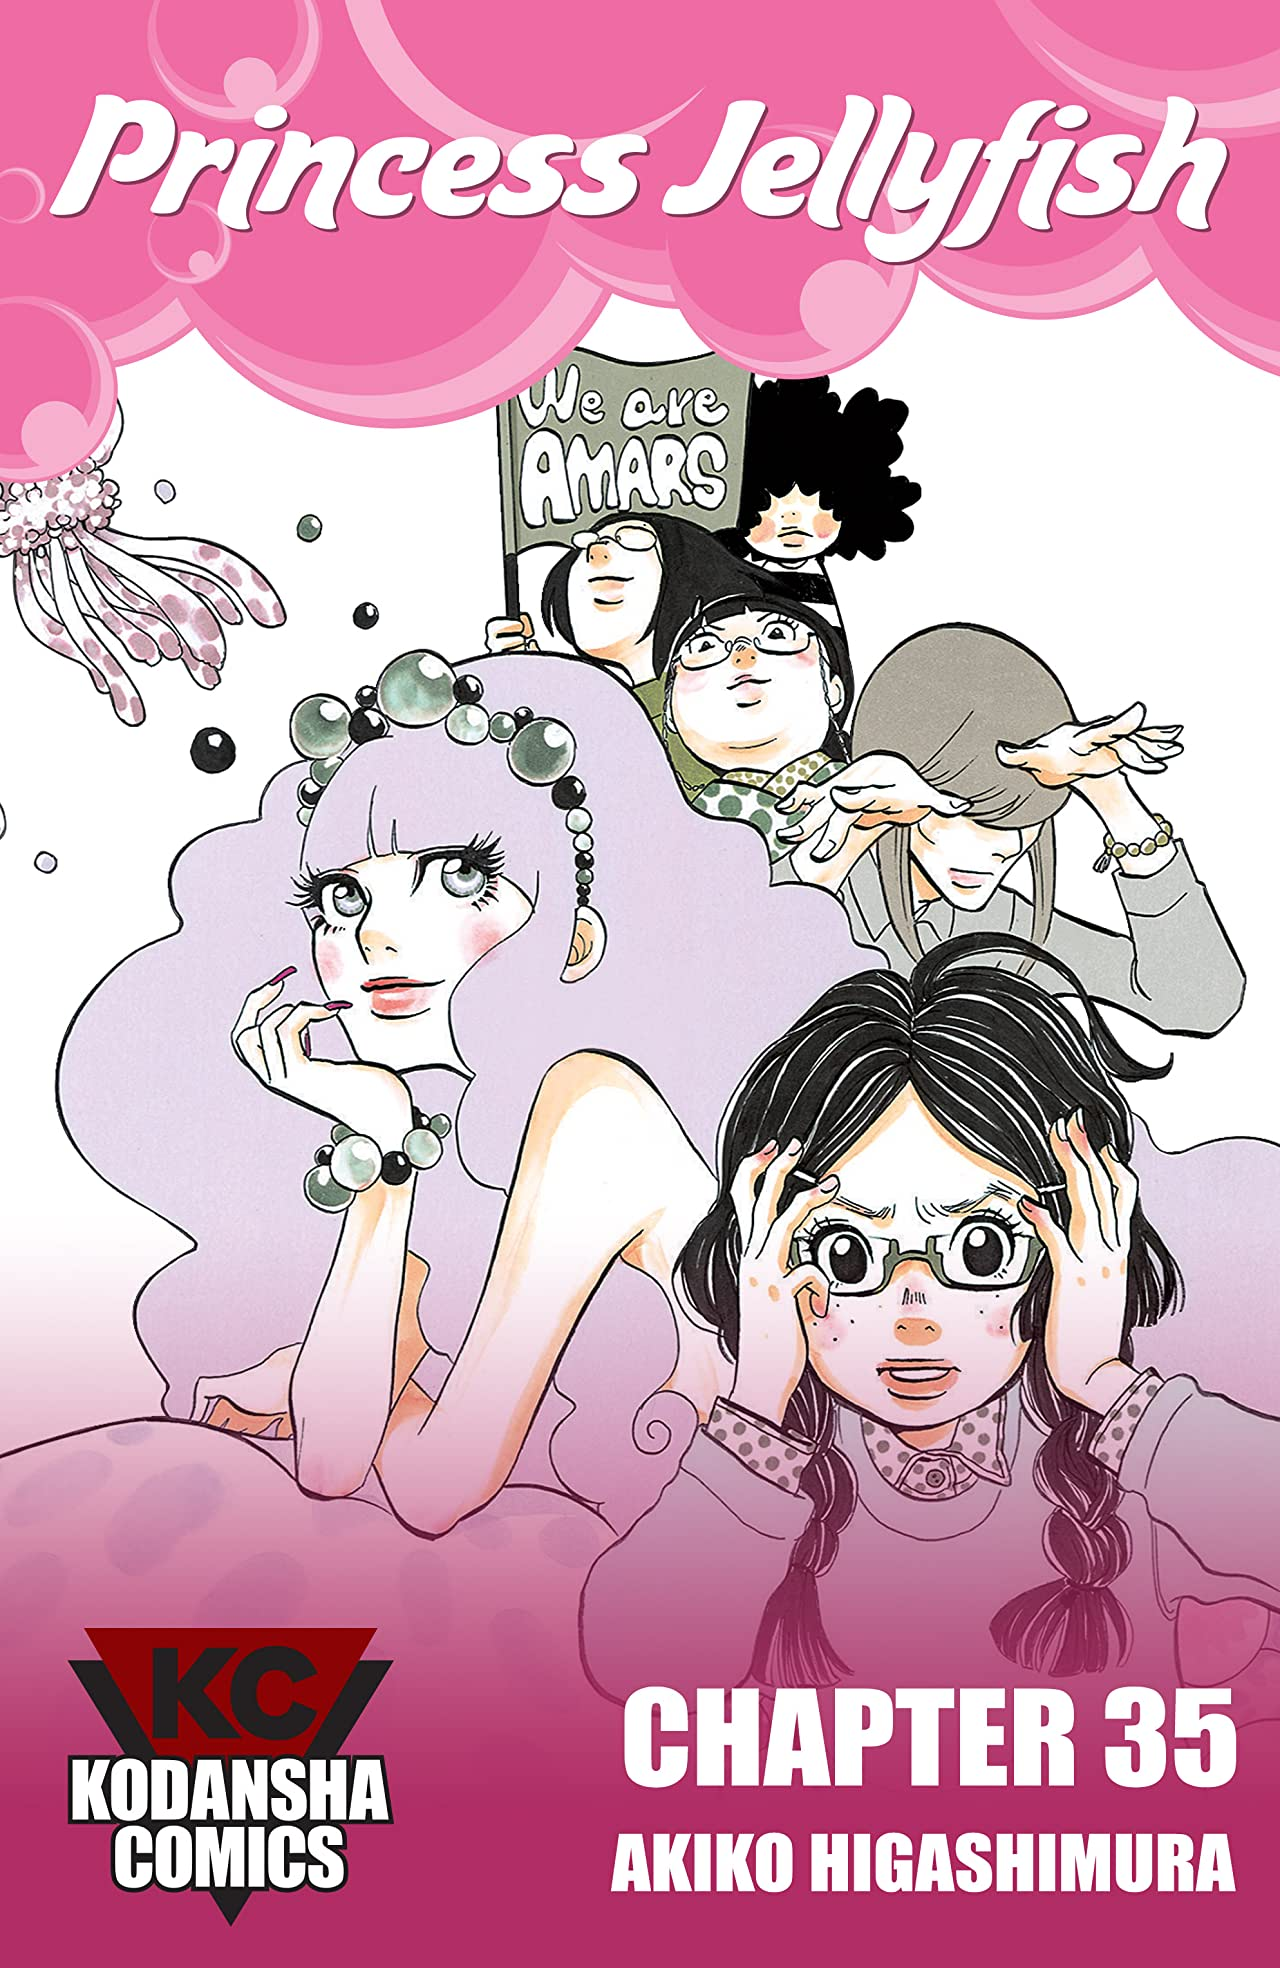 Princess Jellyfish #35